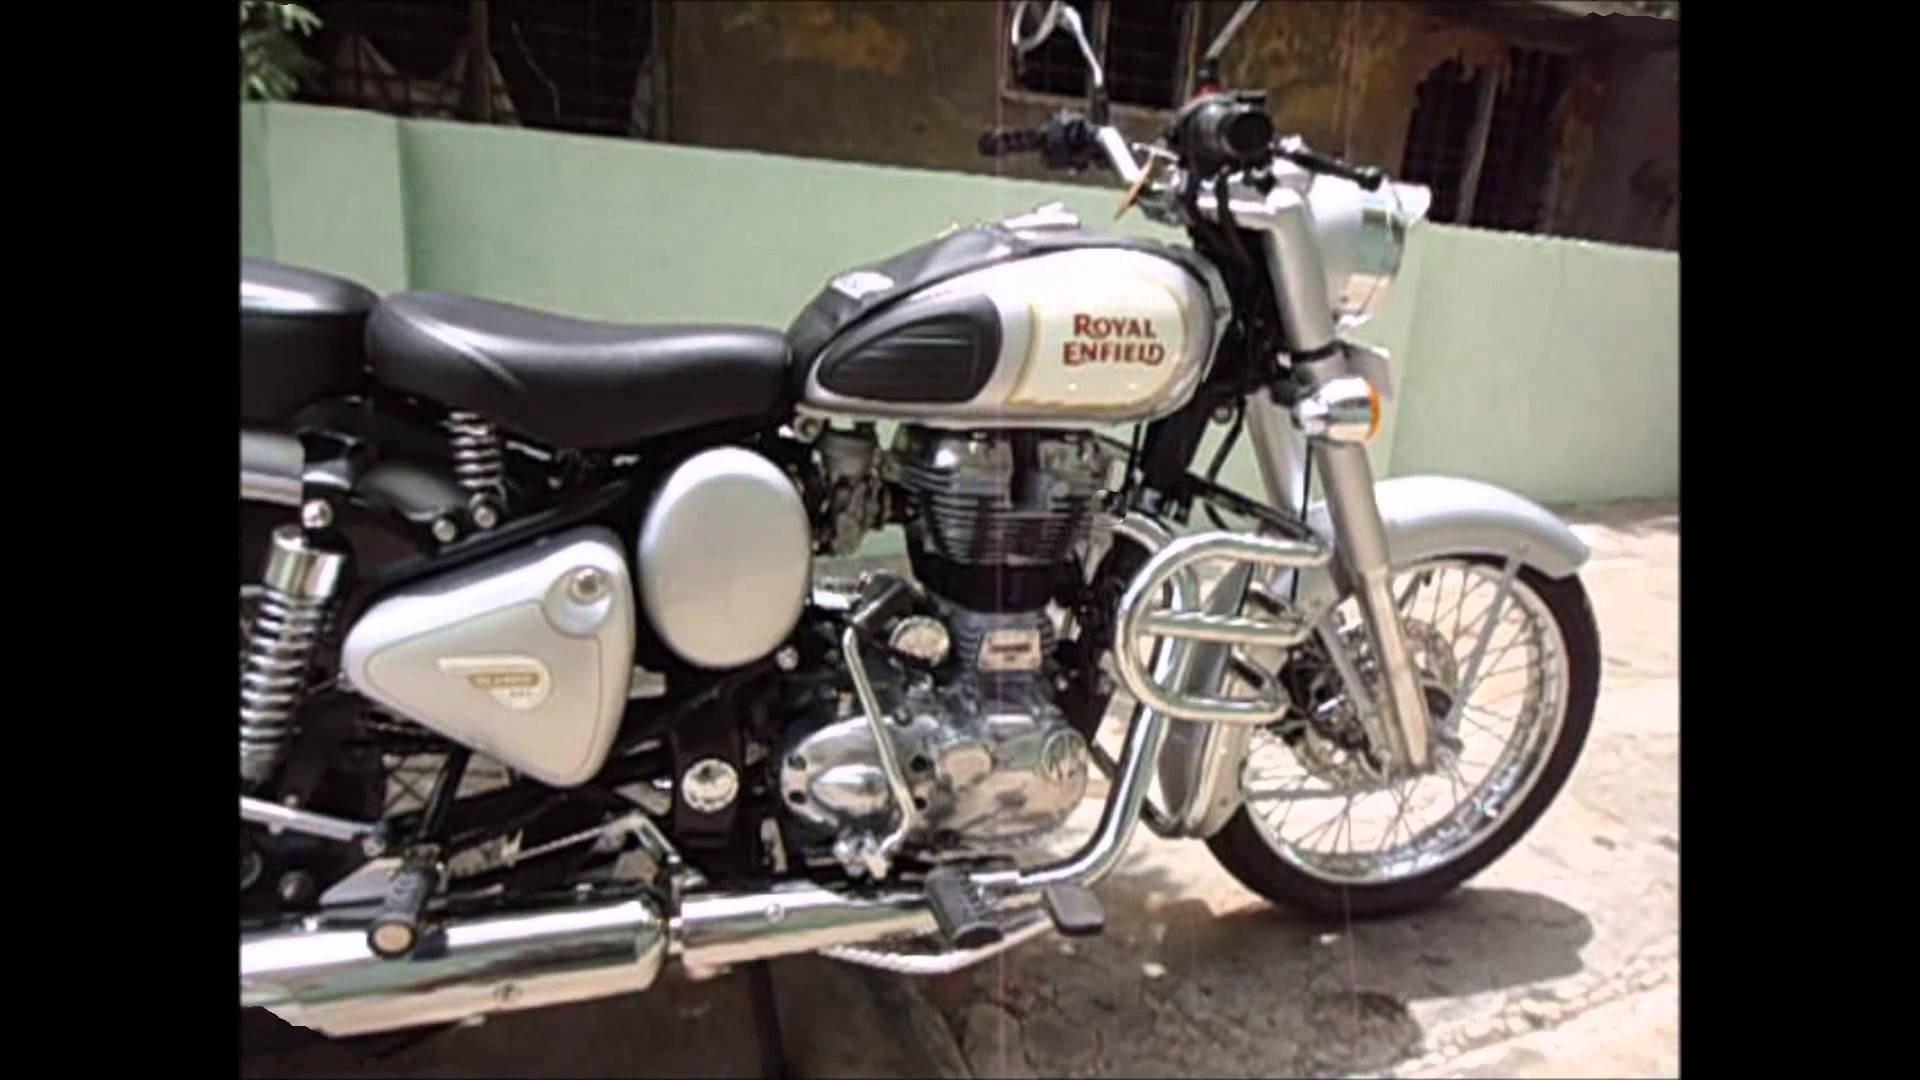 Enfield 350 Bullet Classic #1